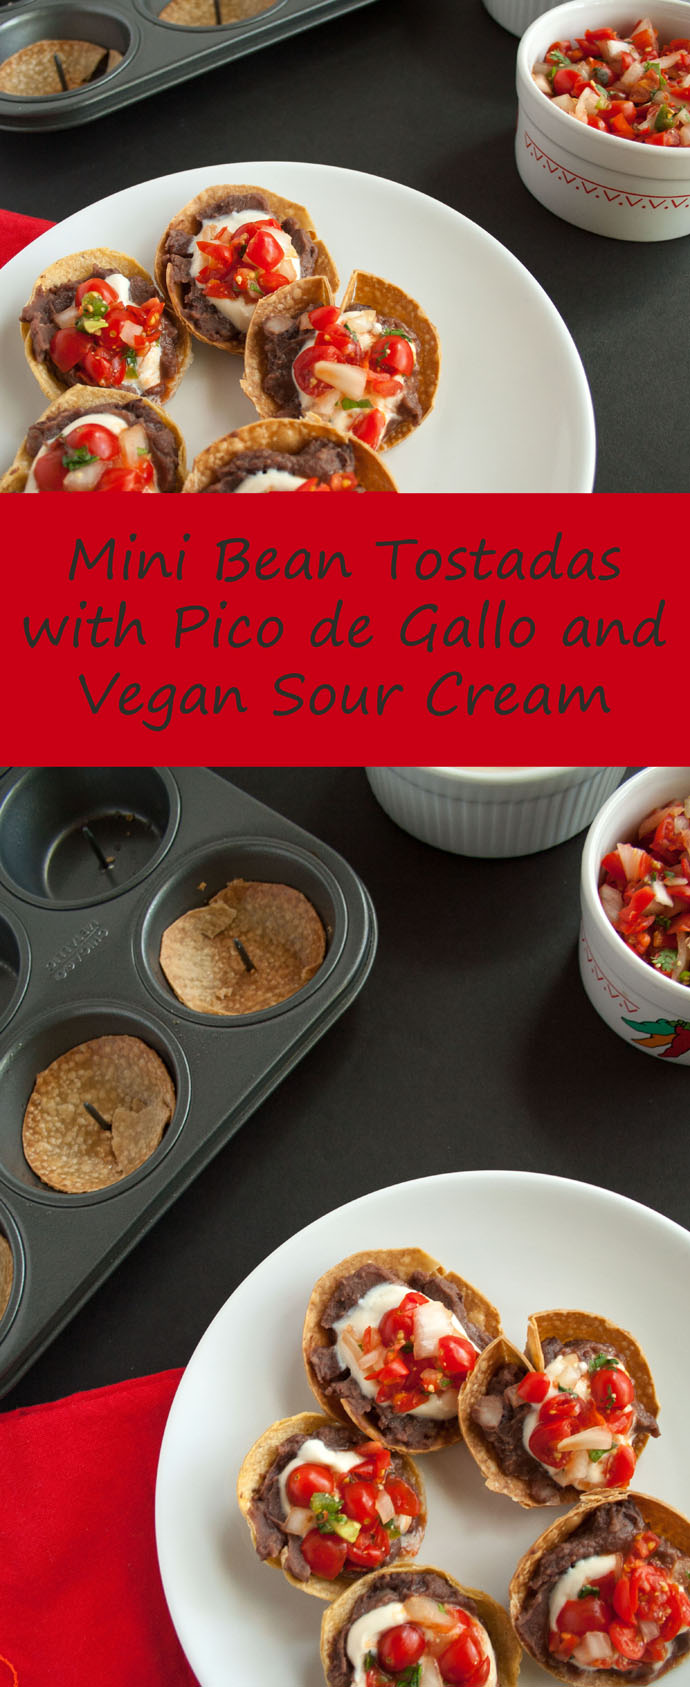 Mini Bean Tostadas with Pico de Gallo and Vegan Sour Cream collage photo with text.